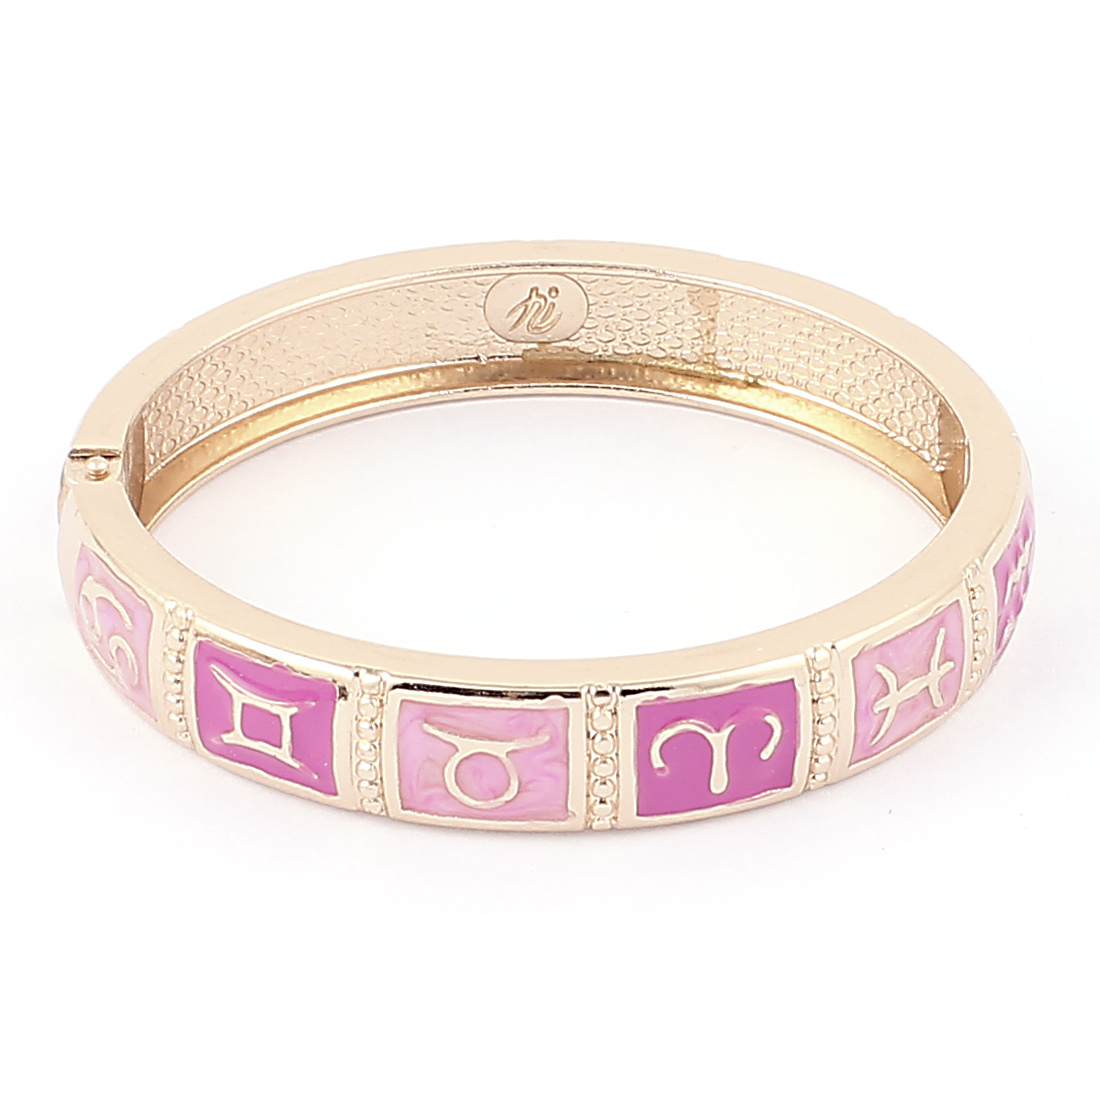 Round Wrist Gold Tone Metal Pink 12 Constellations Pattern Bracelet